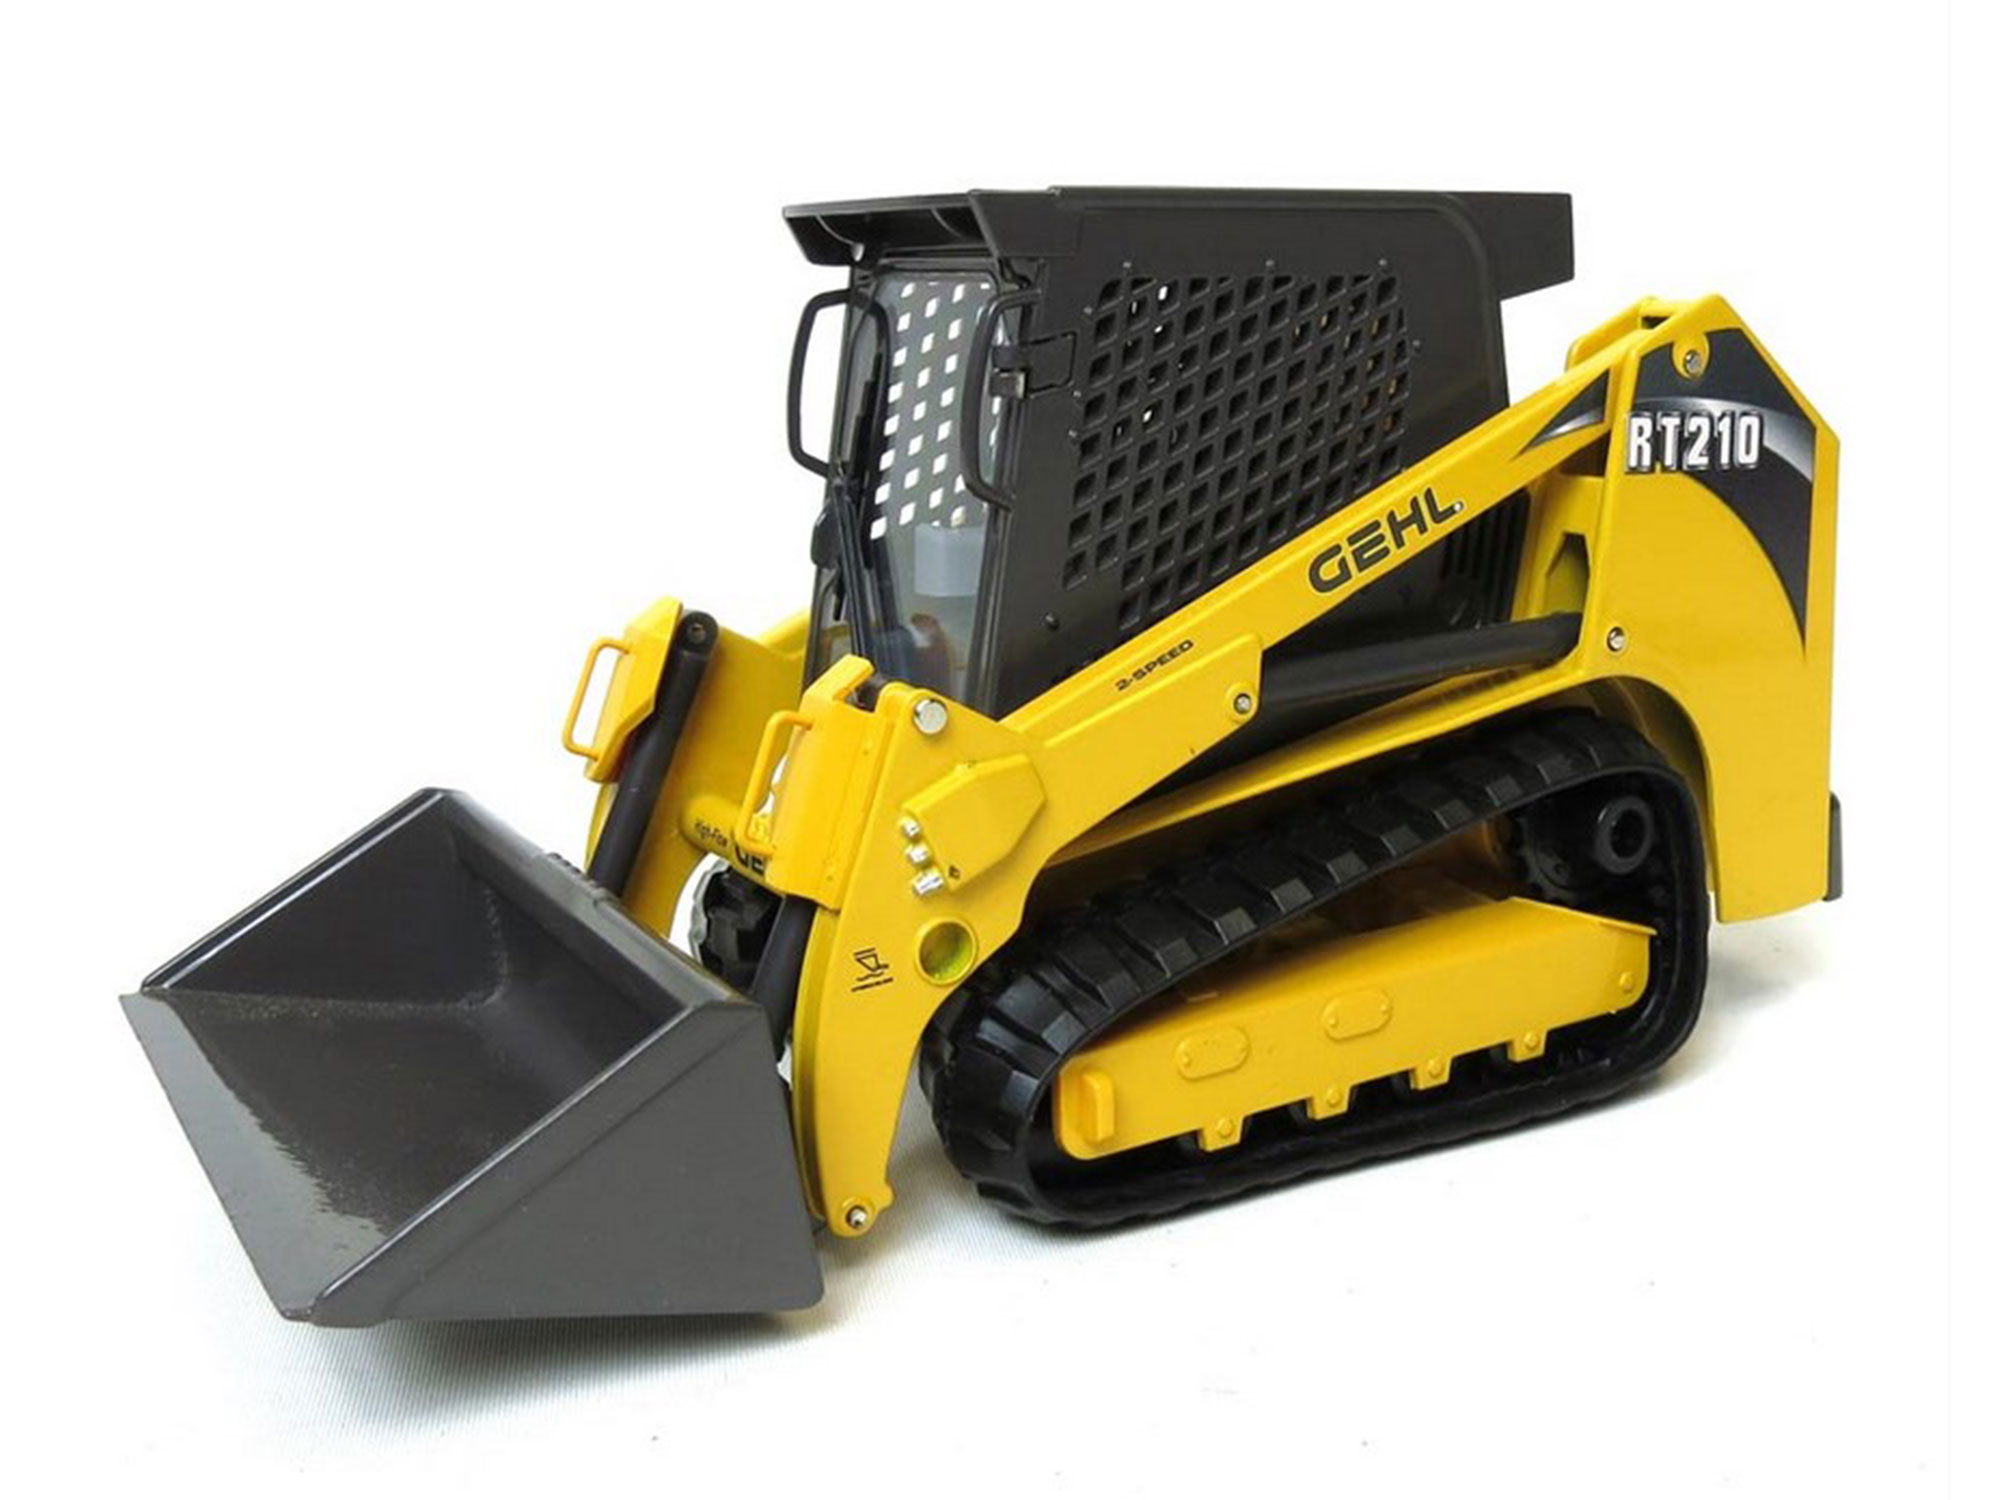 Mercury GEHL RT210 Track Loader